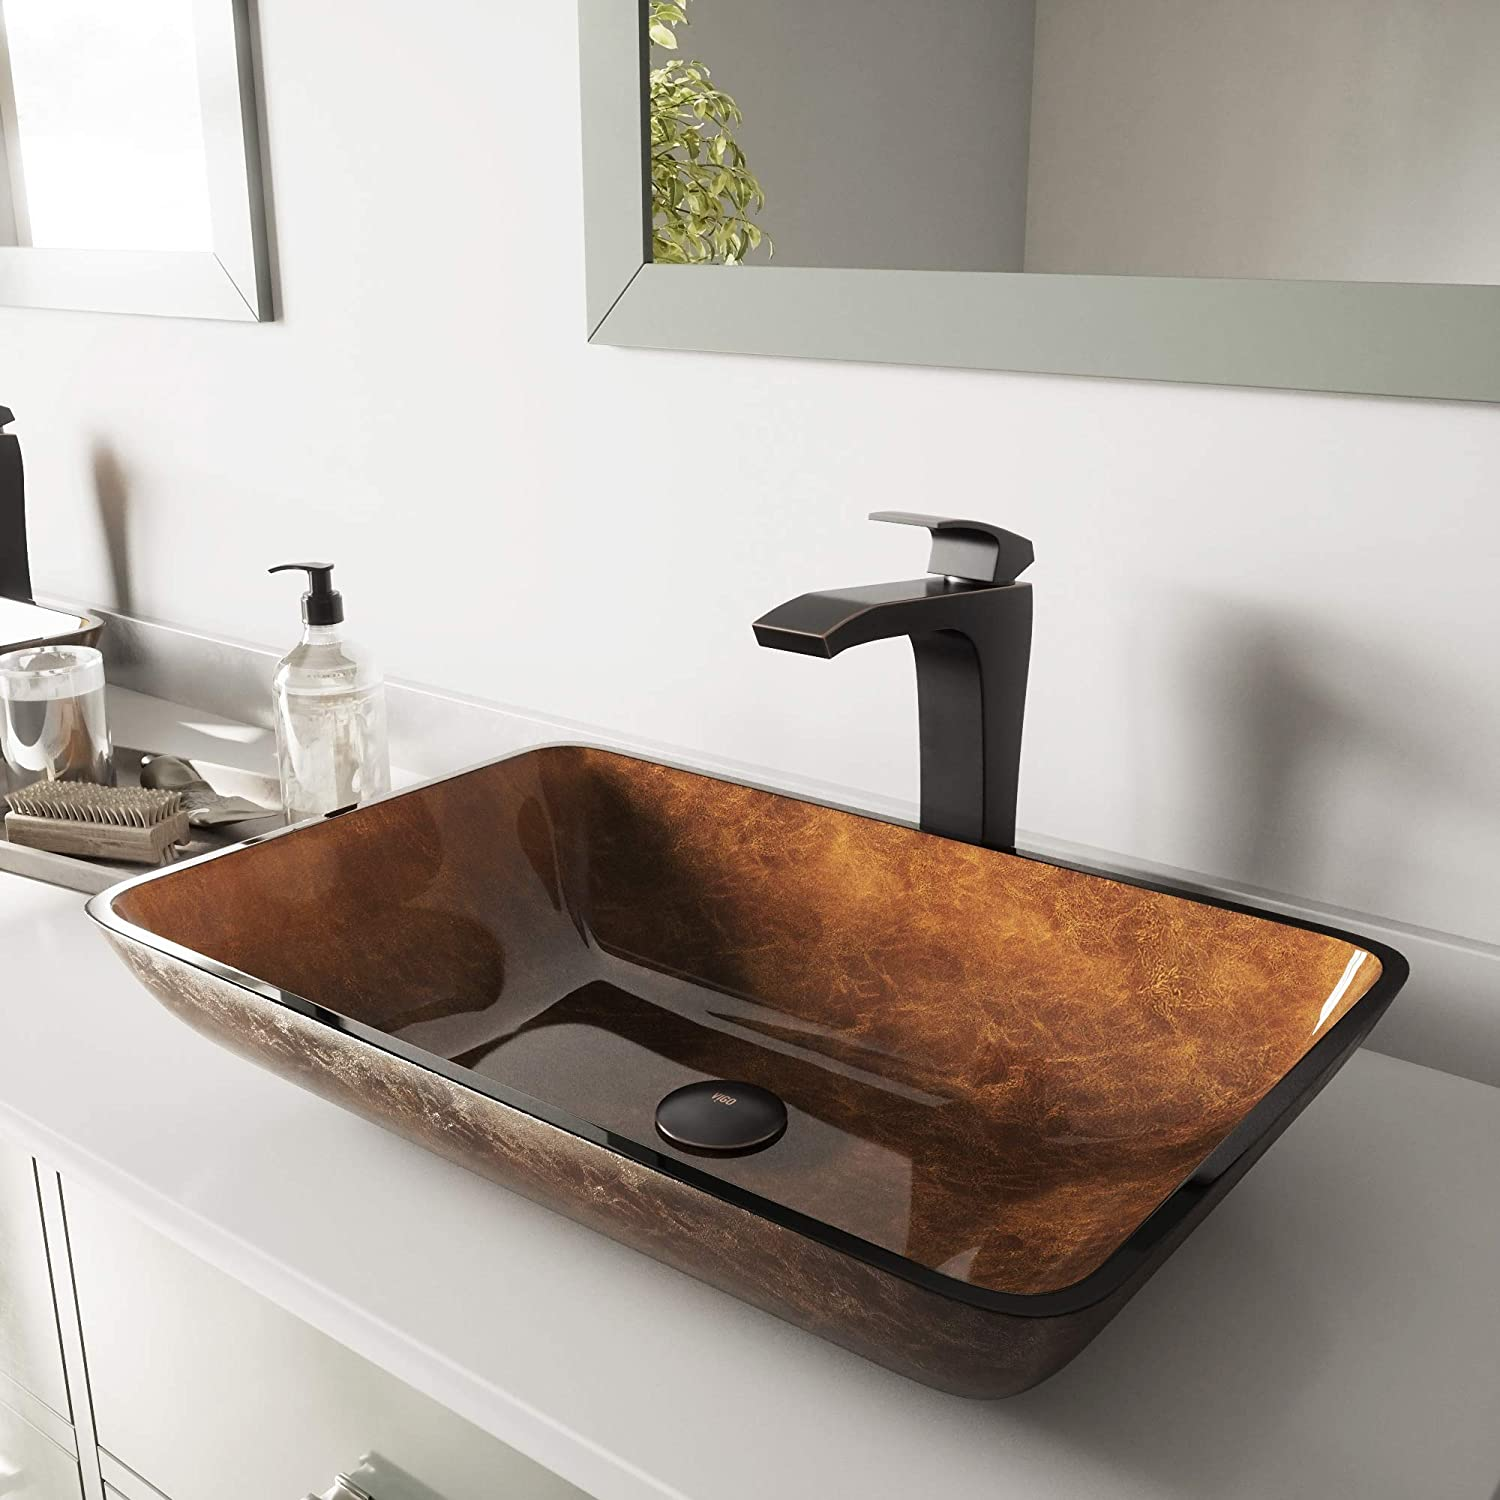 VIGO Rectangular Russet Glass Vessel Bathroom Sink and Blackstonian Vessel Faucet with Pop Up, Antique Rubbed Bronze